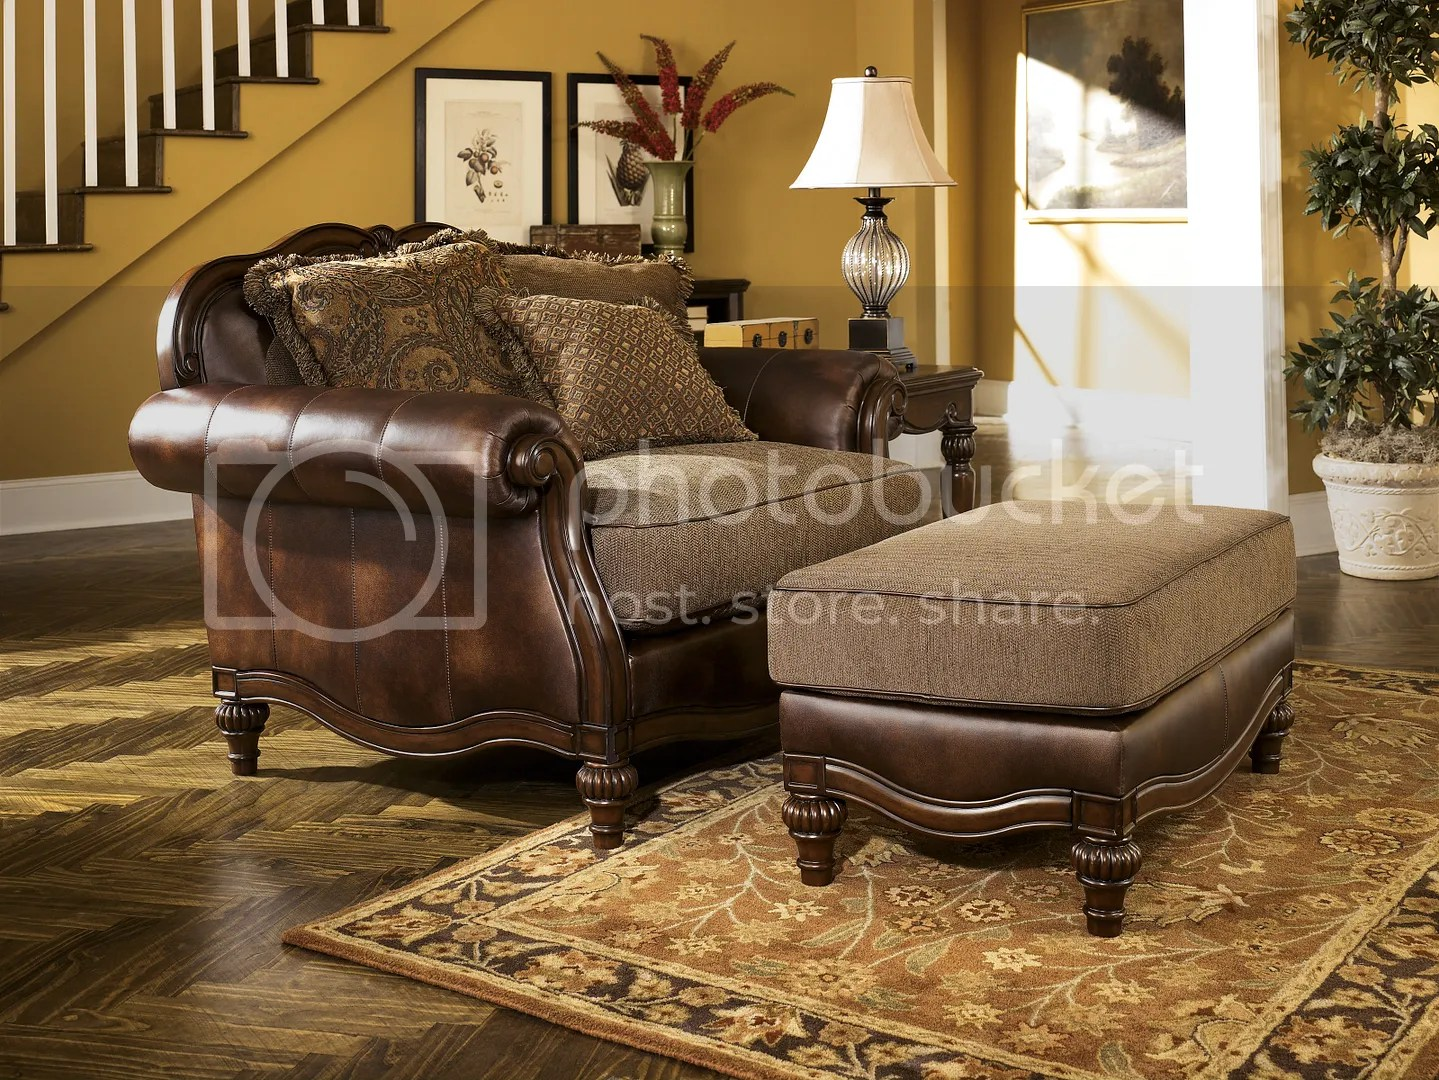 NEW ASHLEY OLD WORLD ANTIQUE TRADITIONAL FAUX LEATHER